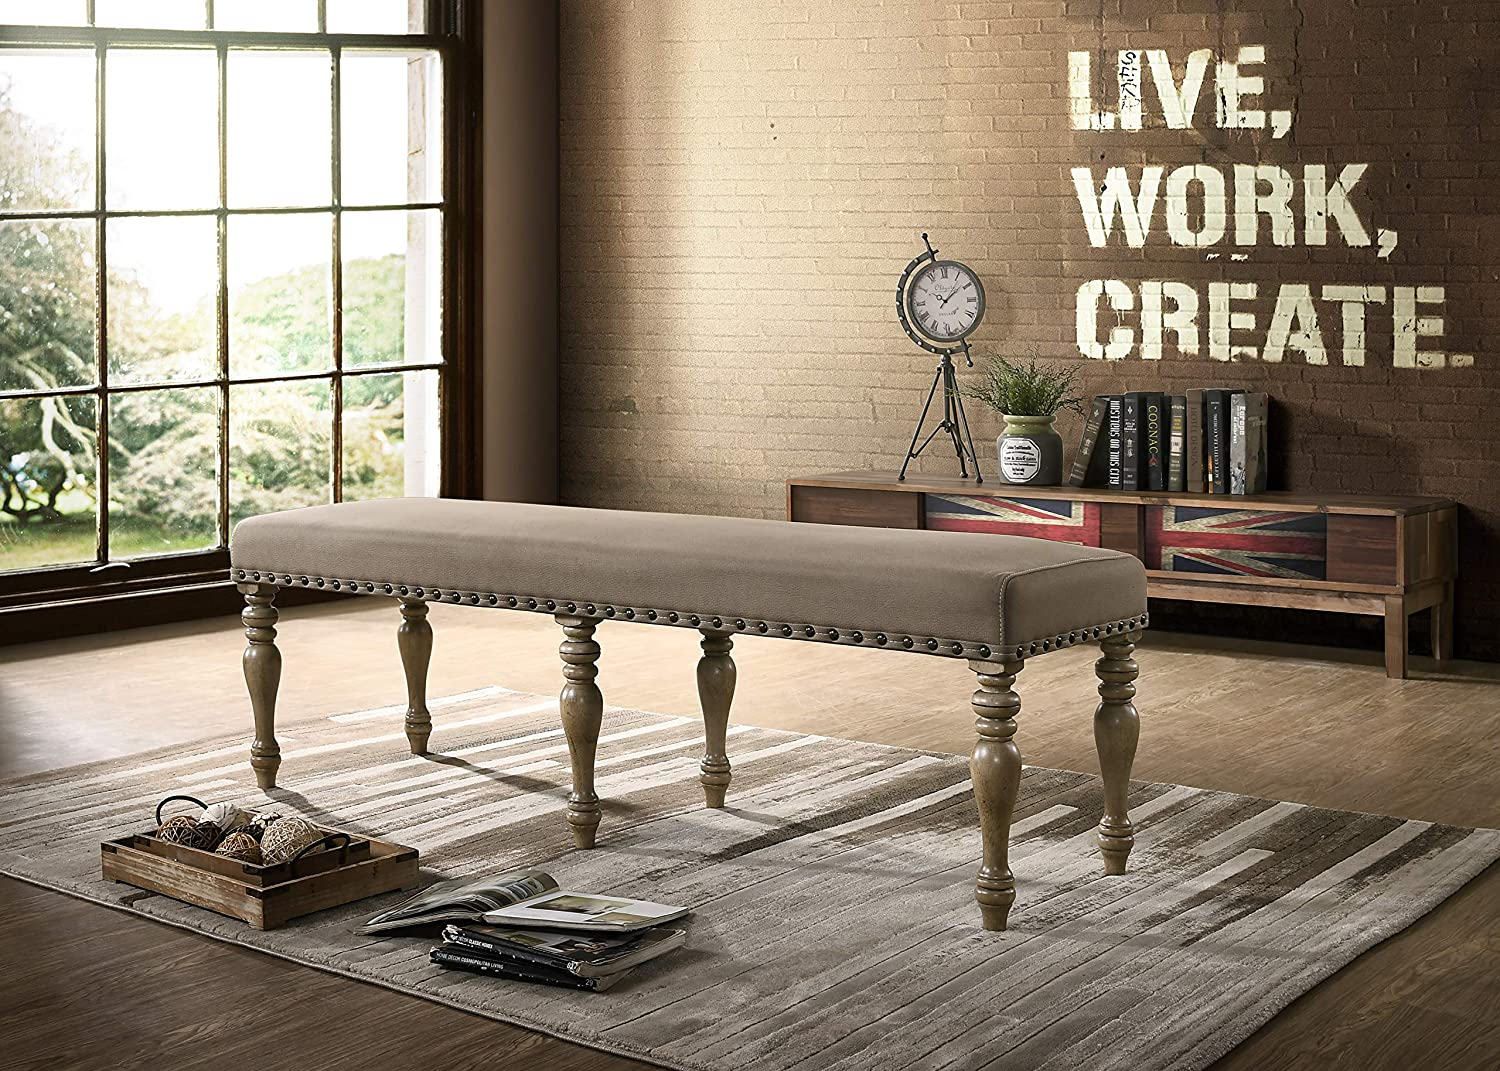 Roundhill Furniture Birmingham Microfiber Upholstered Bench with Nail Head Trim in Driftwood Finish